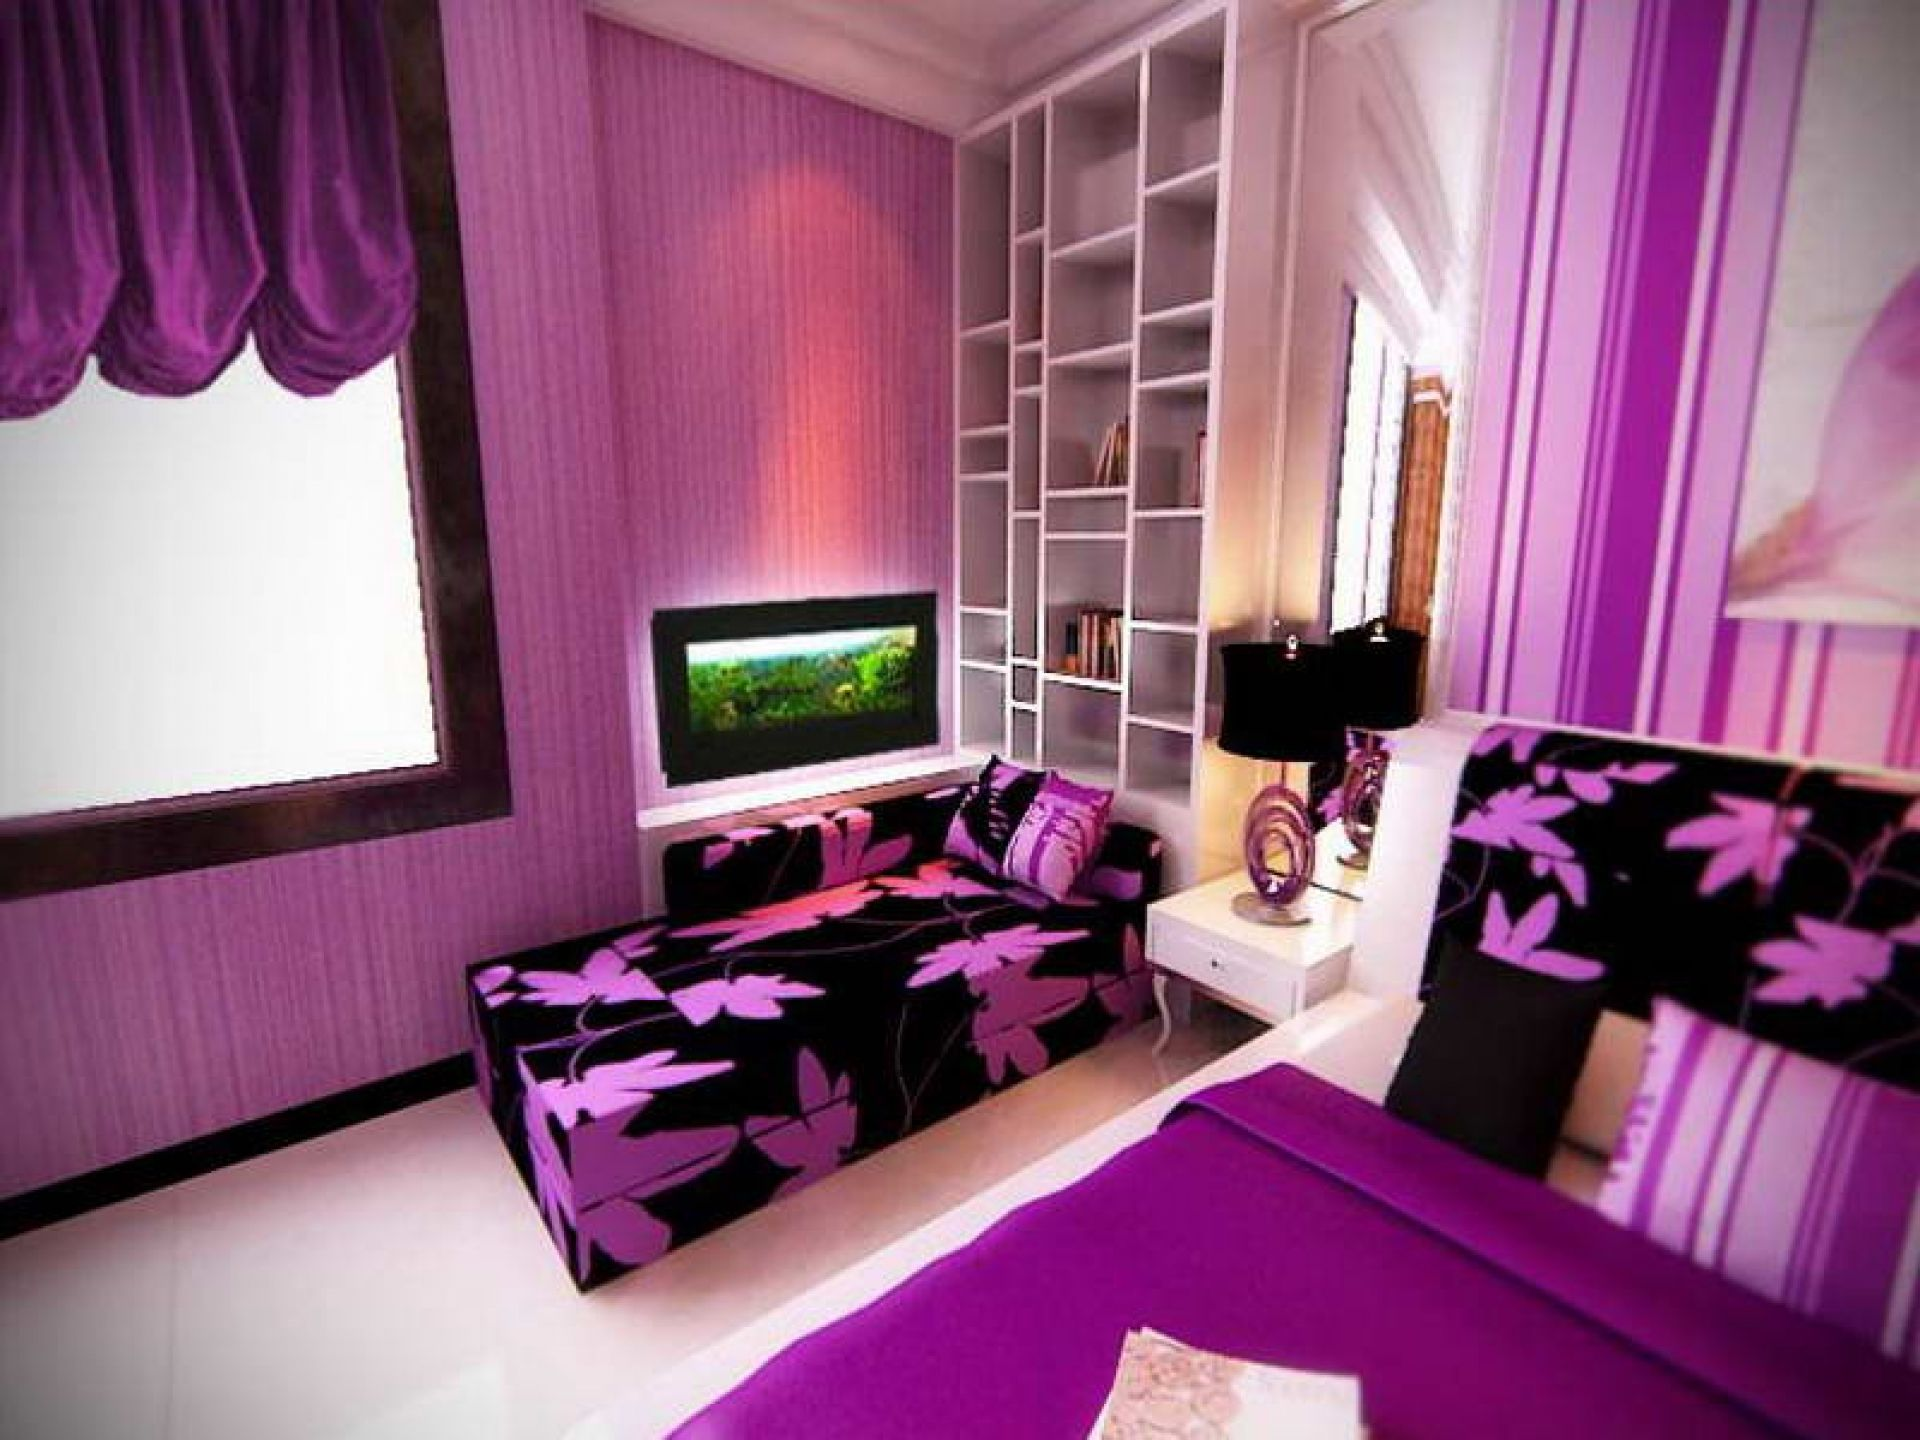 Bedroom Good Looking Room Ideas For Girls Design Ideas With Cute